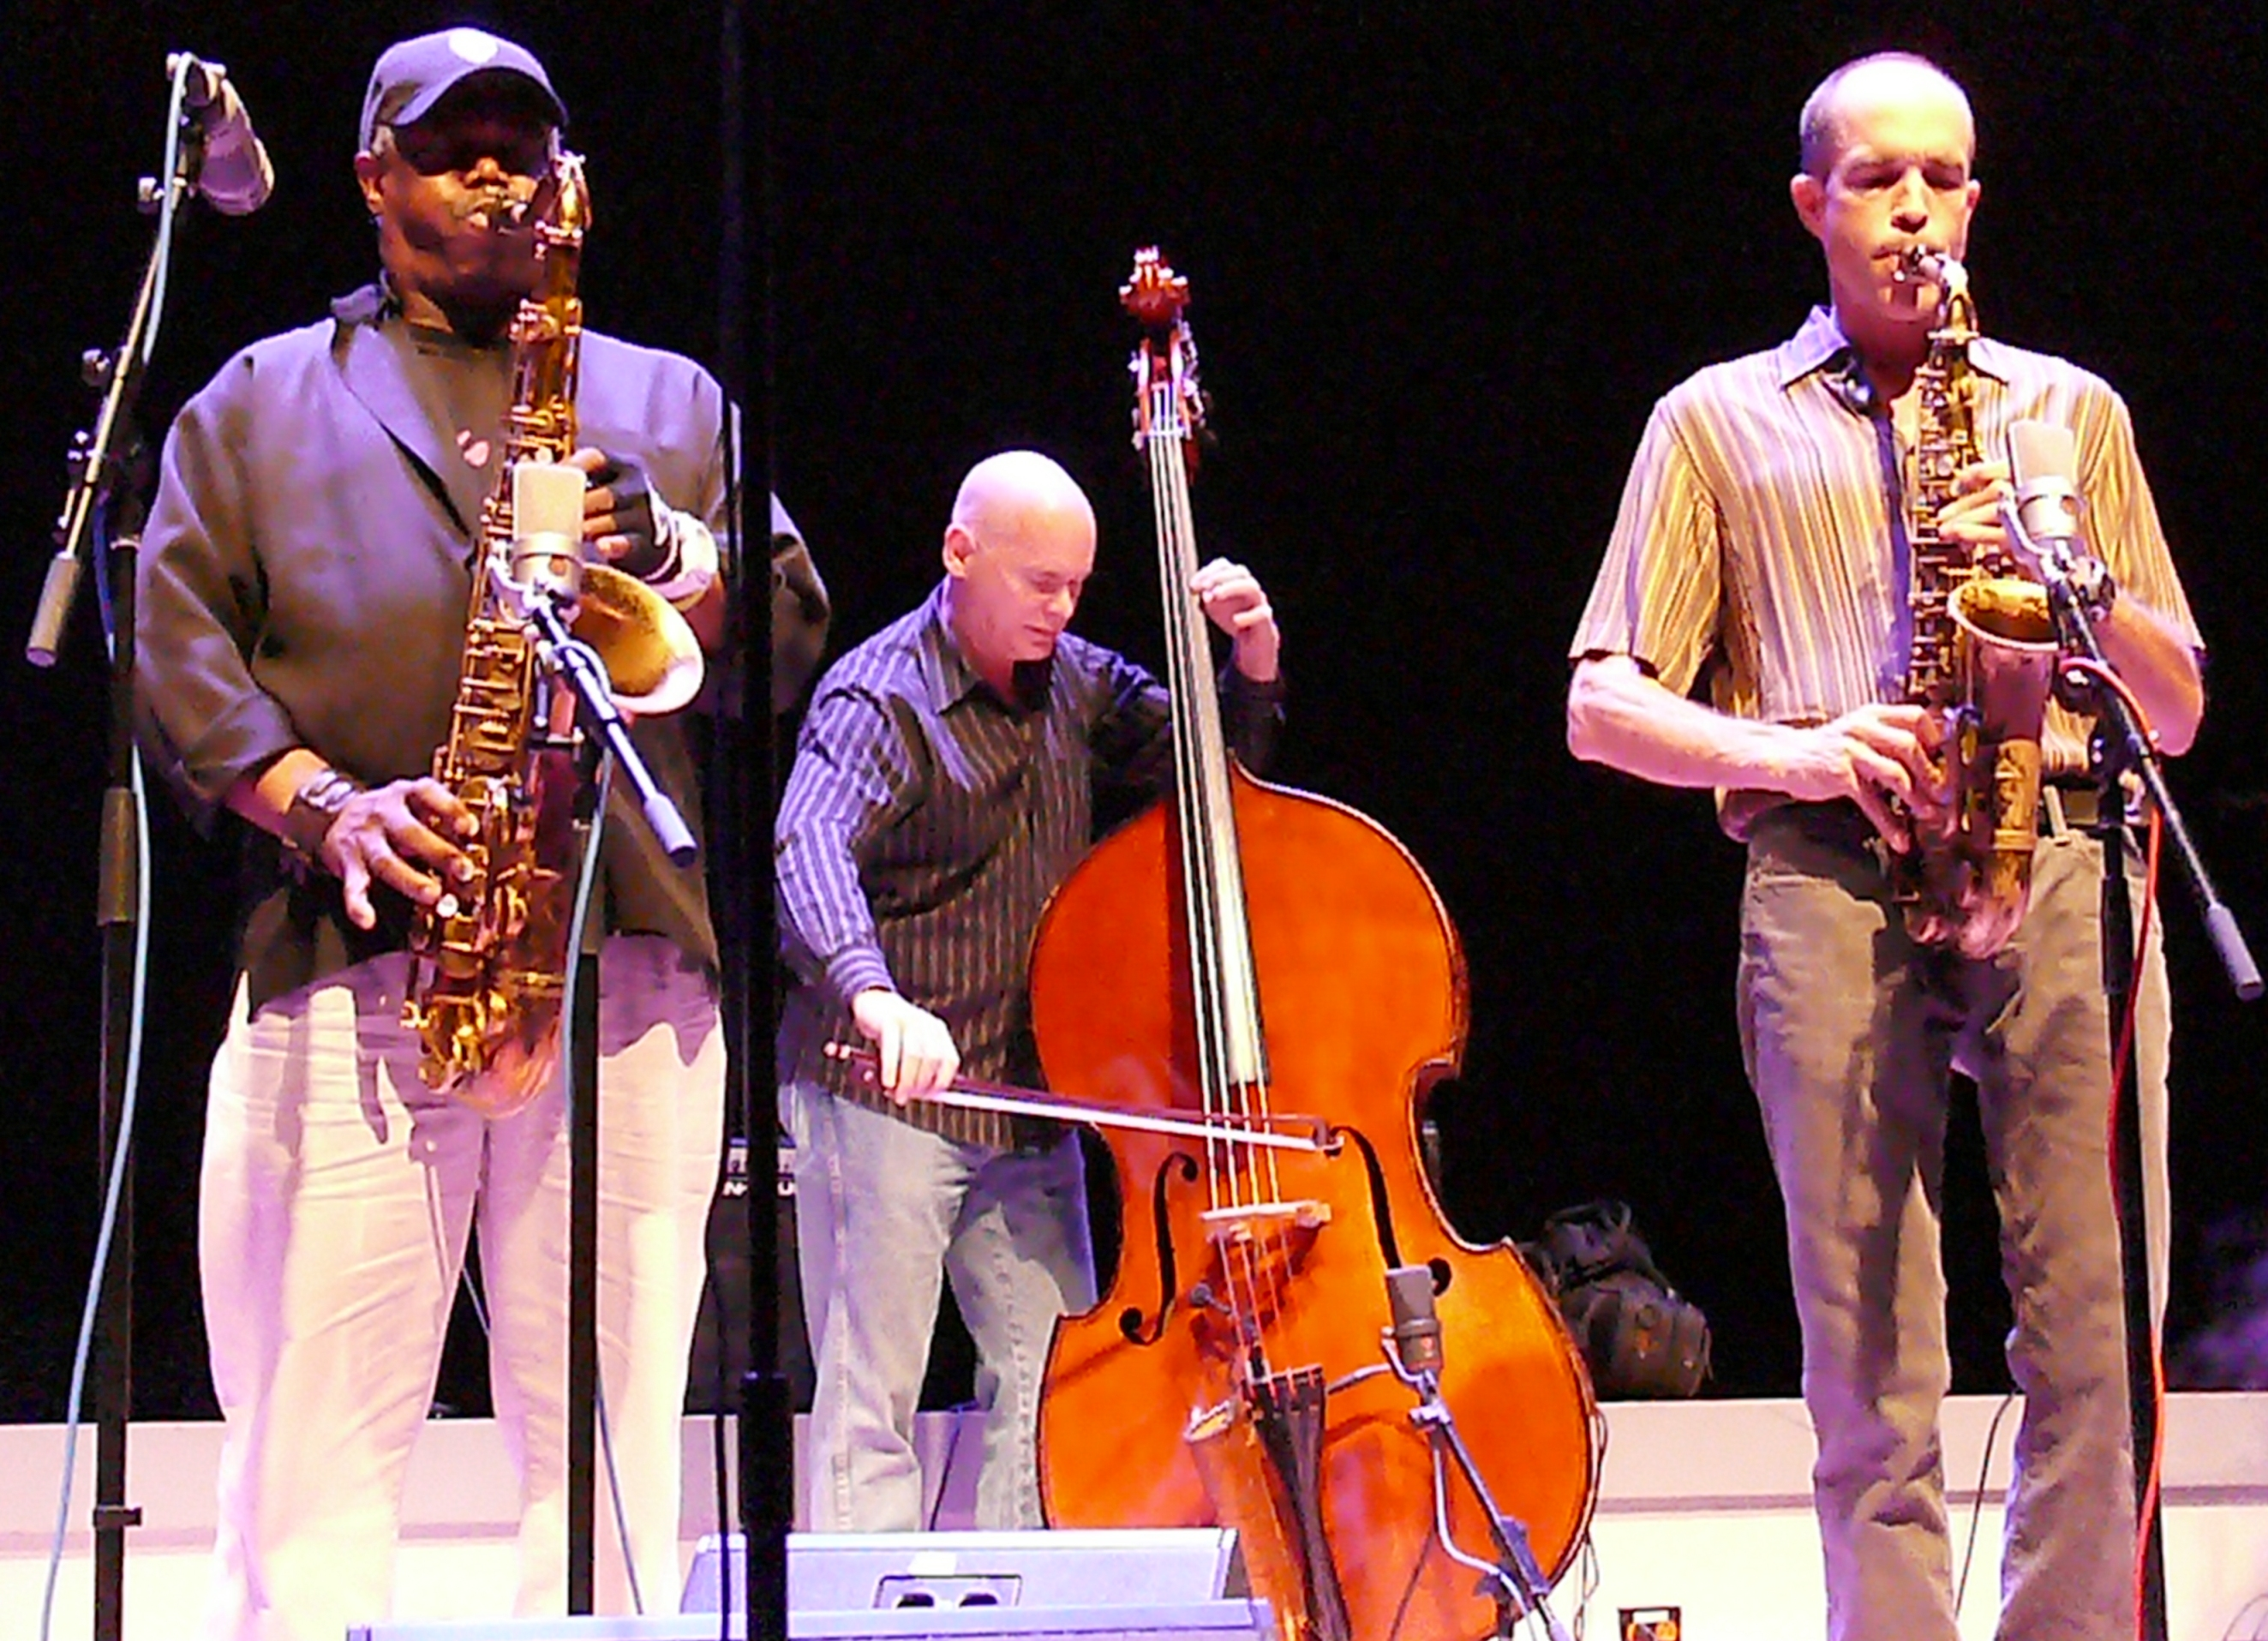 Joe mcphee, mark helias and rob brown at the vision festival, new york in june 2013